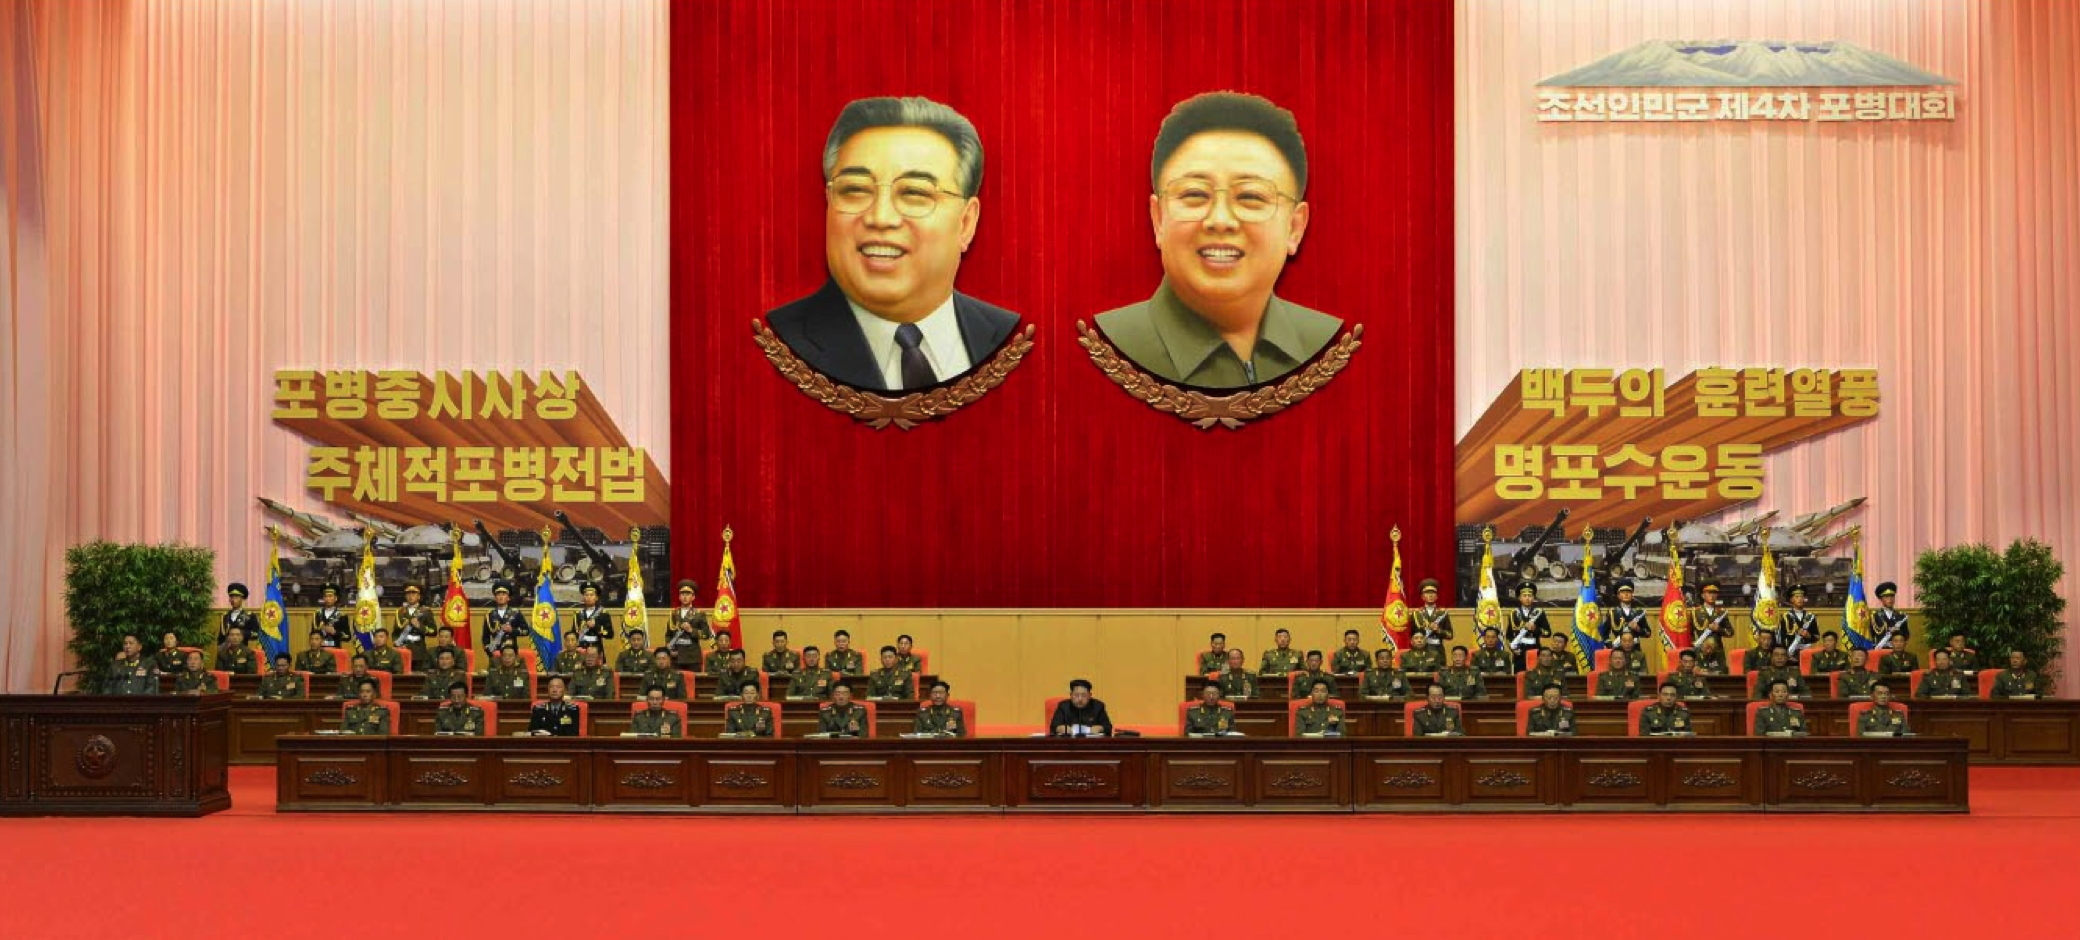 View of the leadership platform at April 25 House of Culture in Pyongyang, the venue of the 4th conference of KPA Artillery personnel held on December 3 and December 4, 2015 (Photo: Rodong Sinmun).